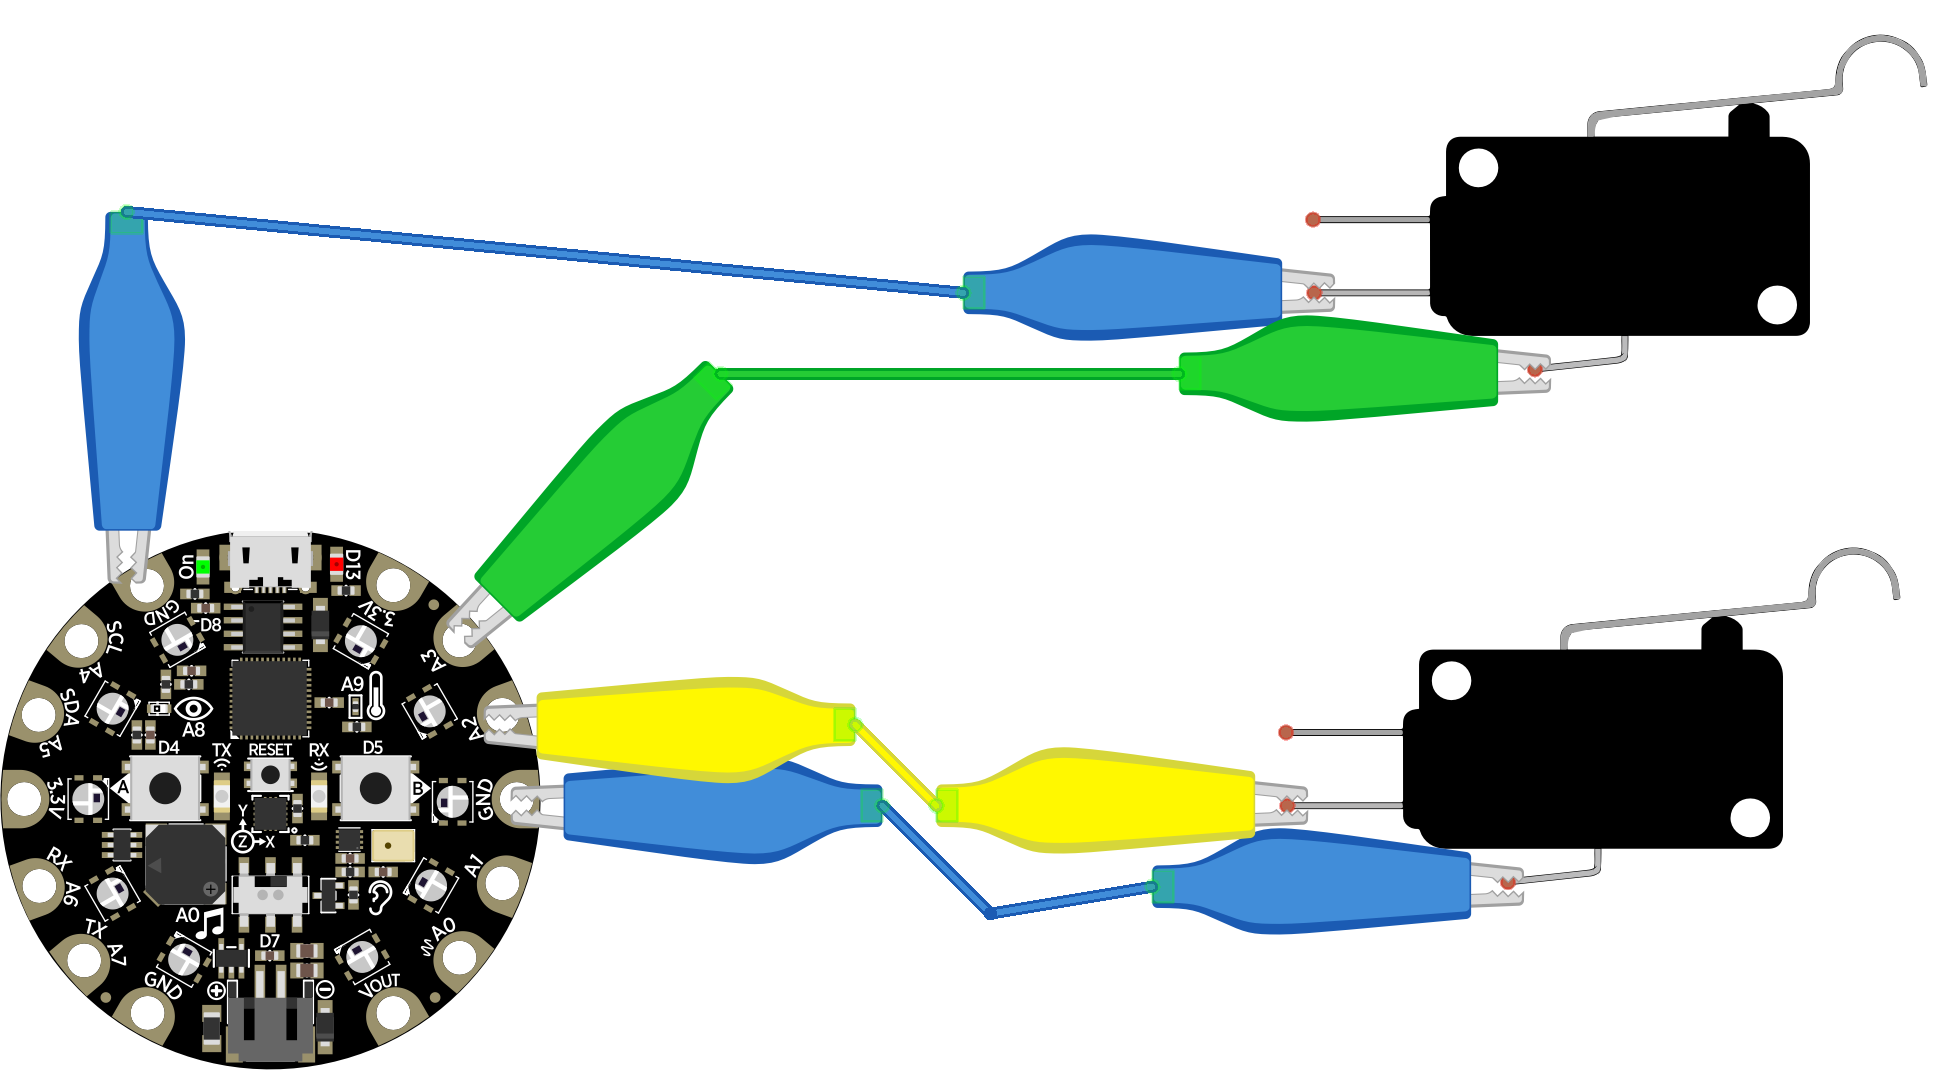 The circular Circuit Playground Express has 1 aligator clip connected to A3, 1 alligator clip connected A2 and the ends of each respective clip connected to different micro switch. Each switch also has a alligator clip going from to ground on the Circuit Playground